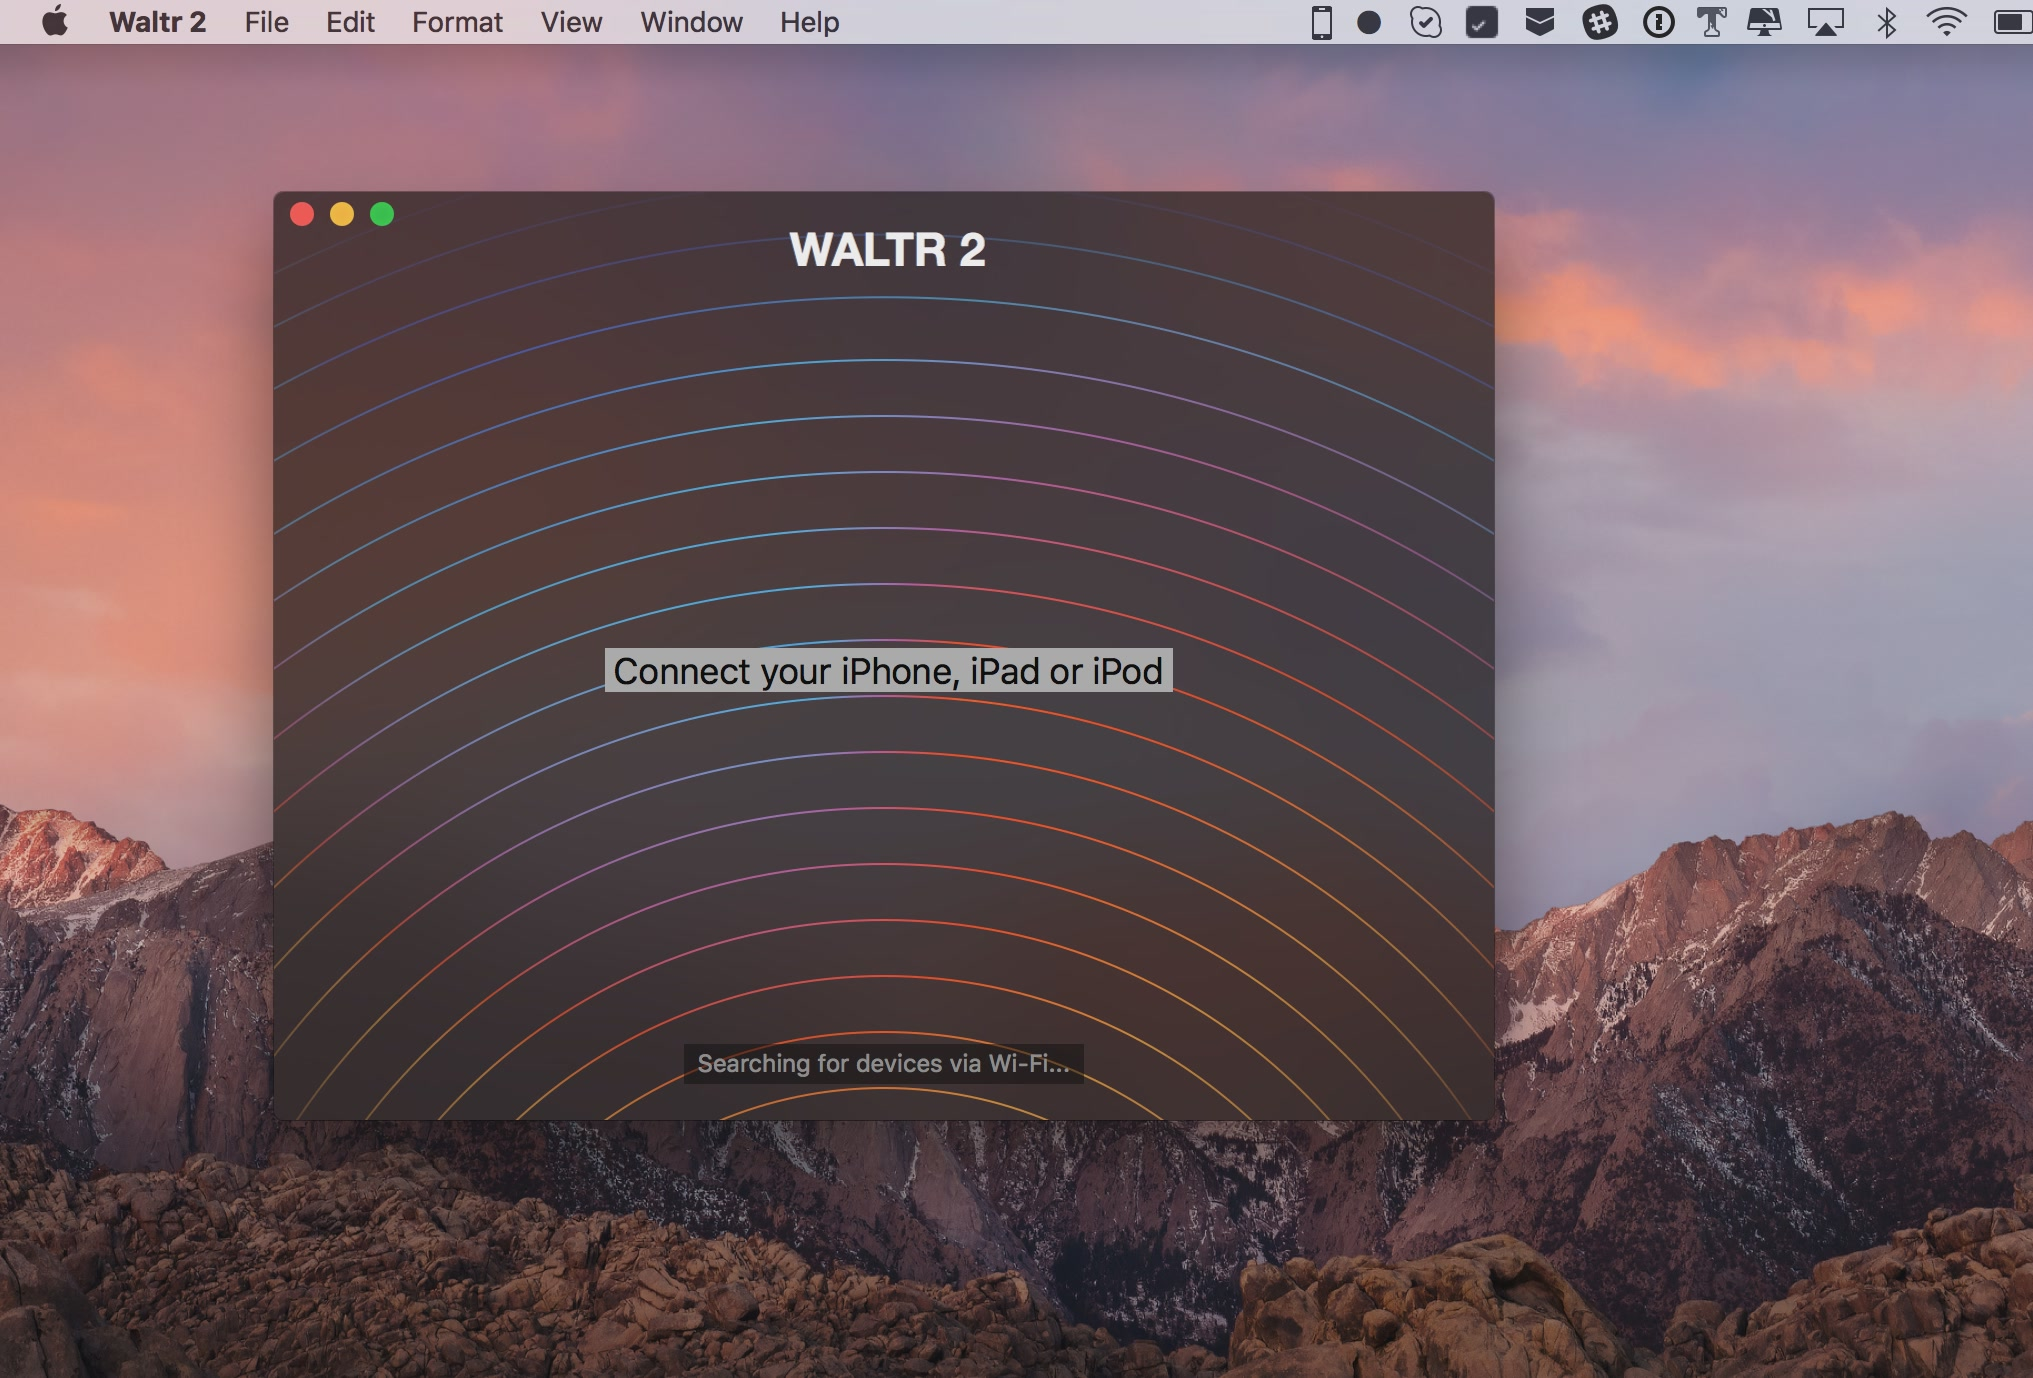 Waltr 2 for macOS connect your device Mac screenshot 001